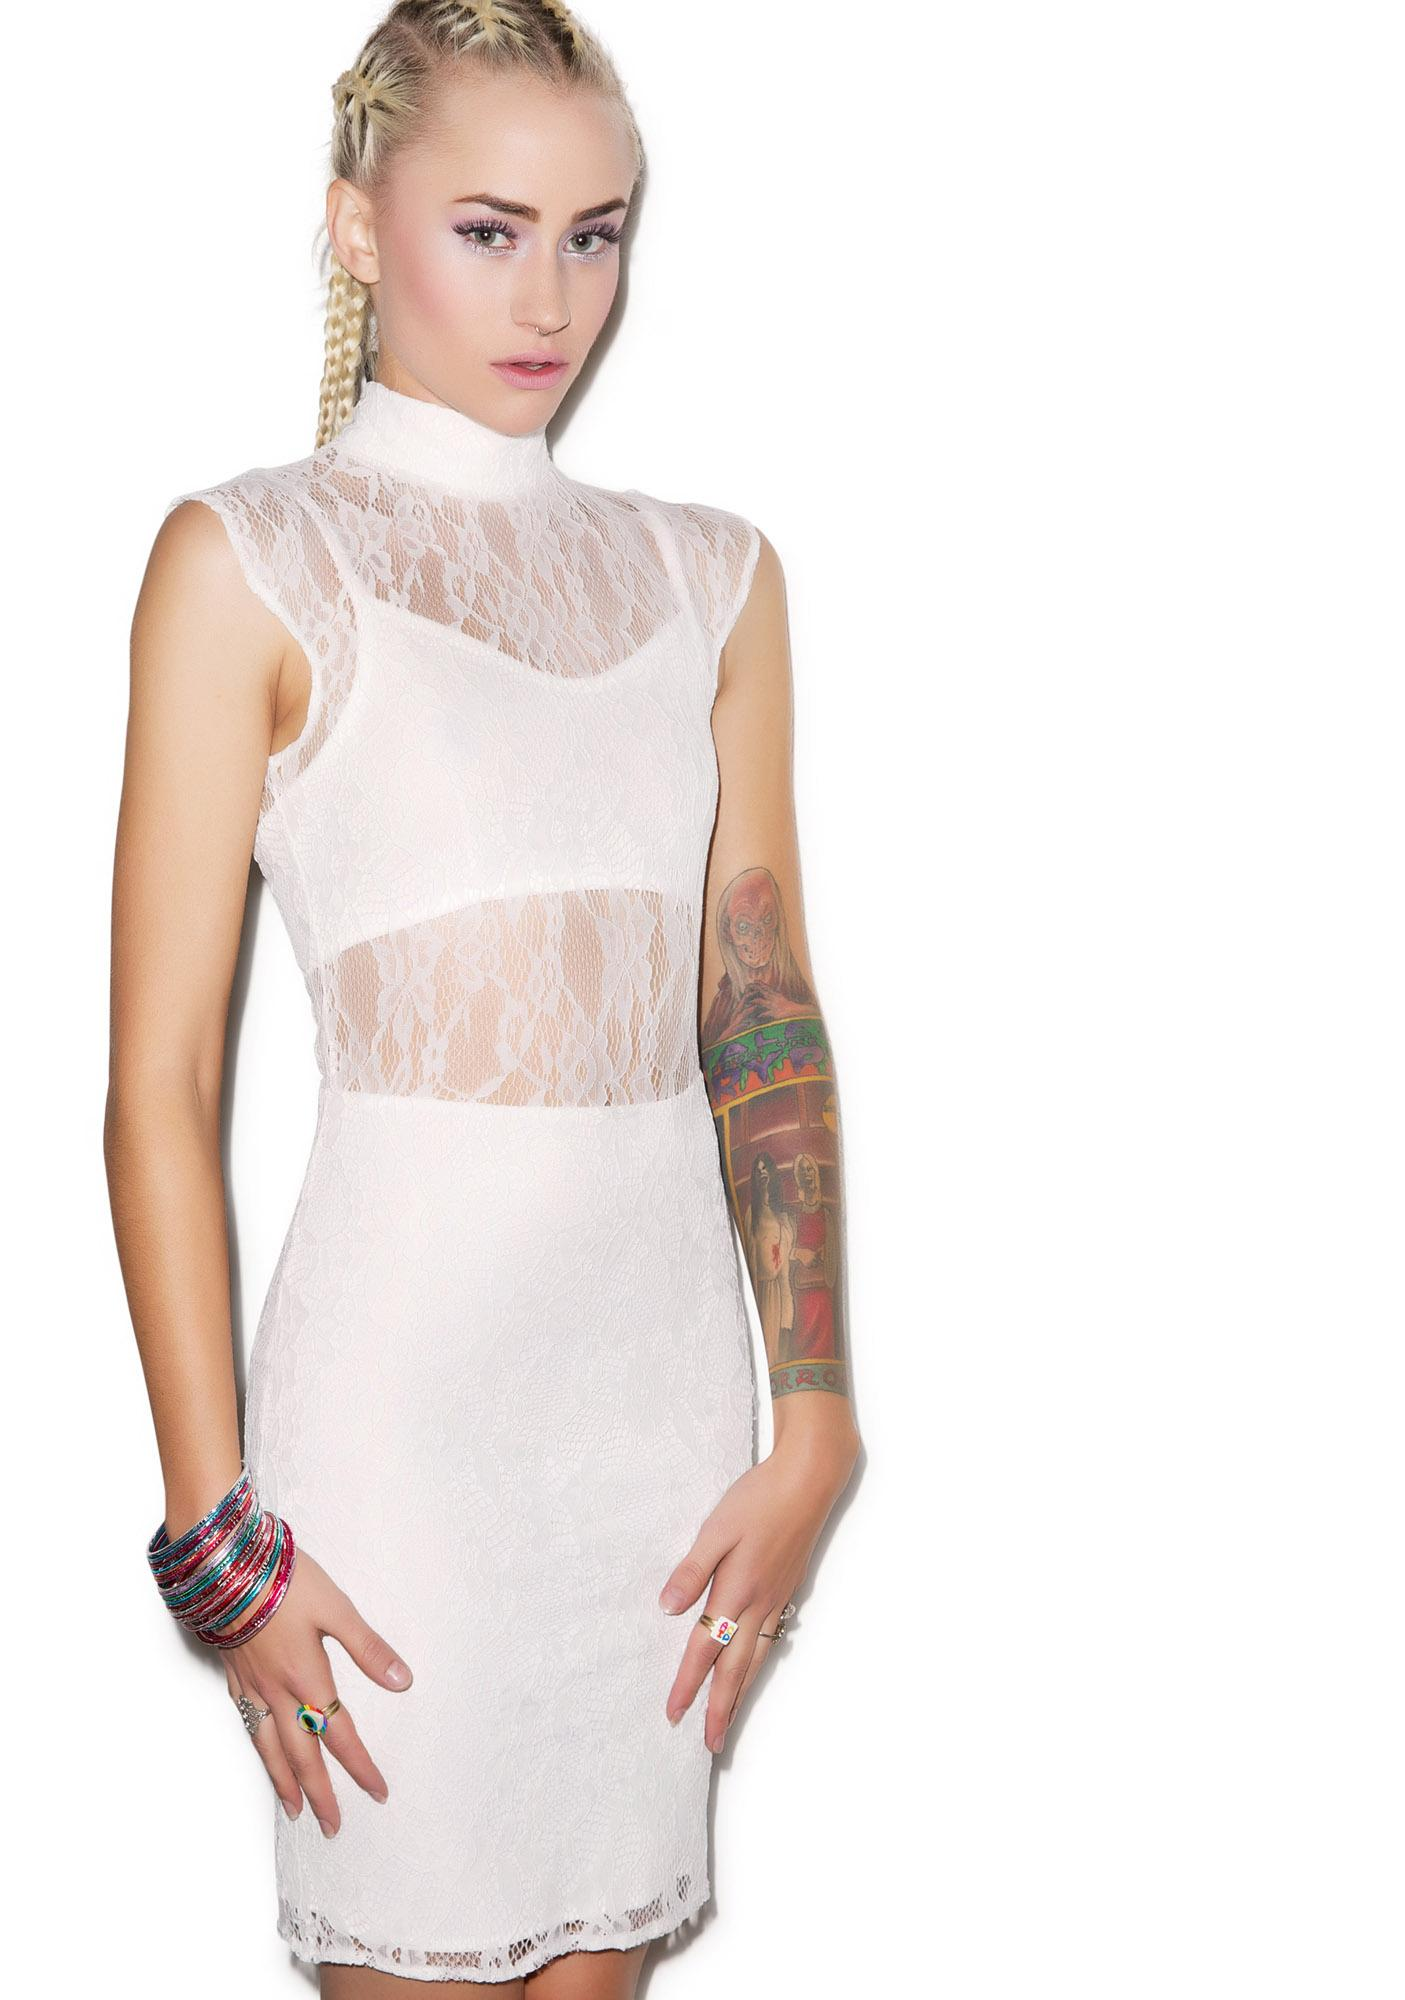 Tiger Mist Entrapment Lace Dress